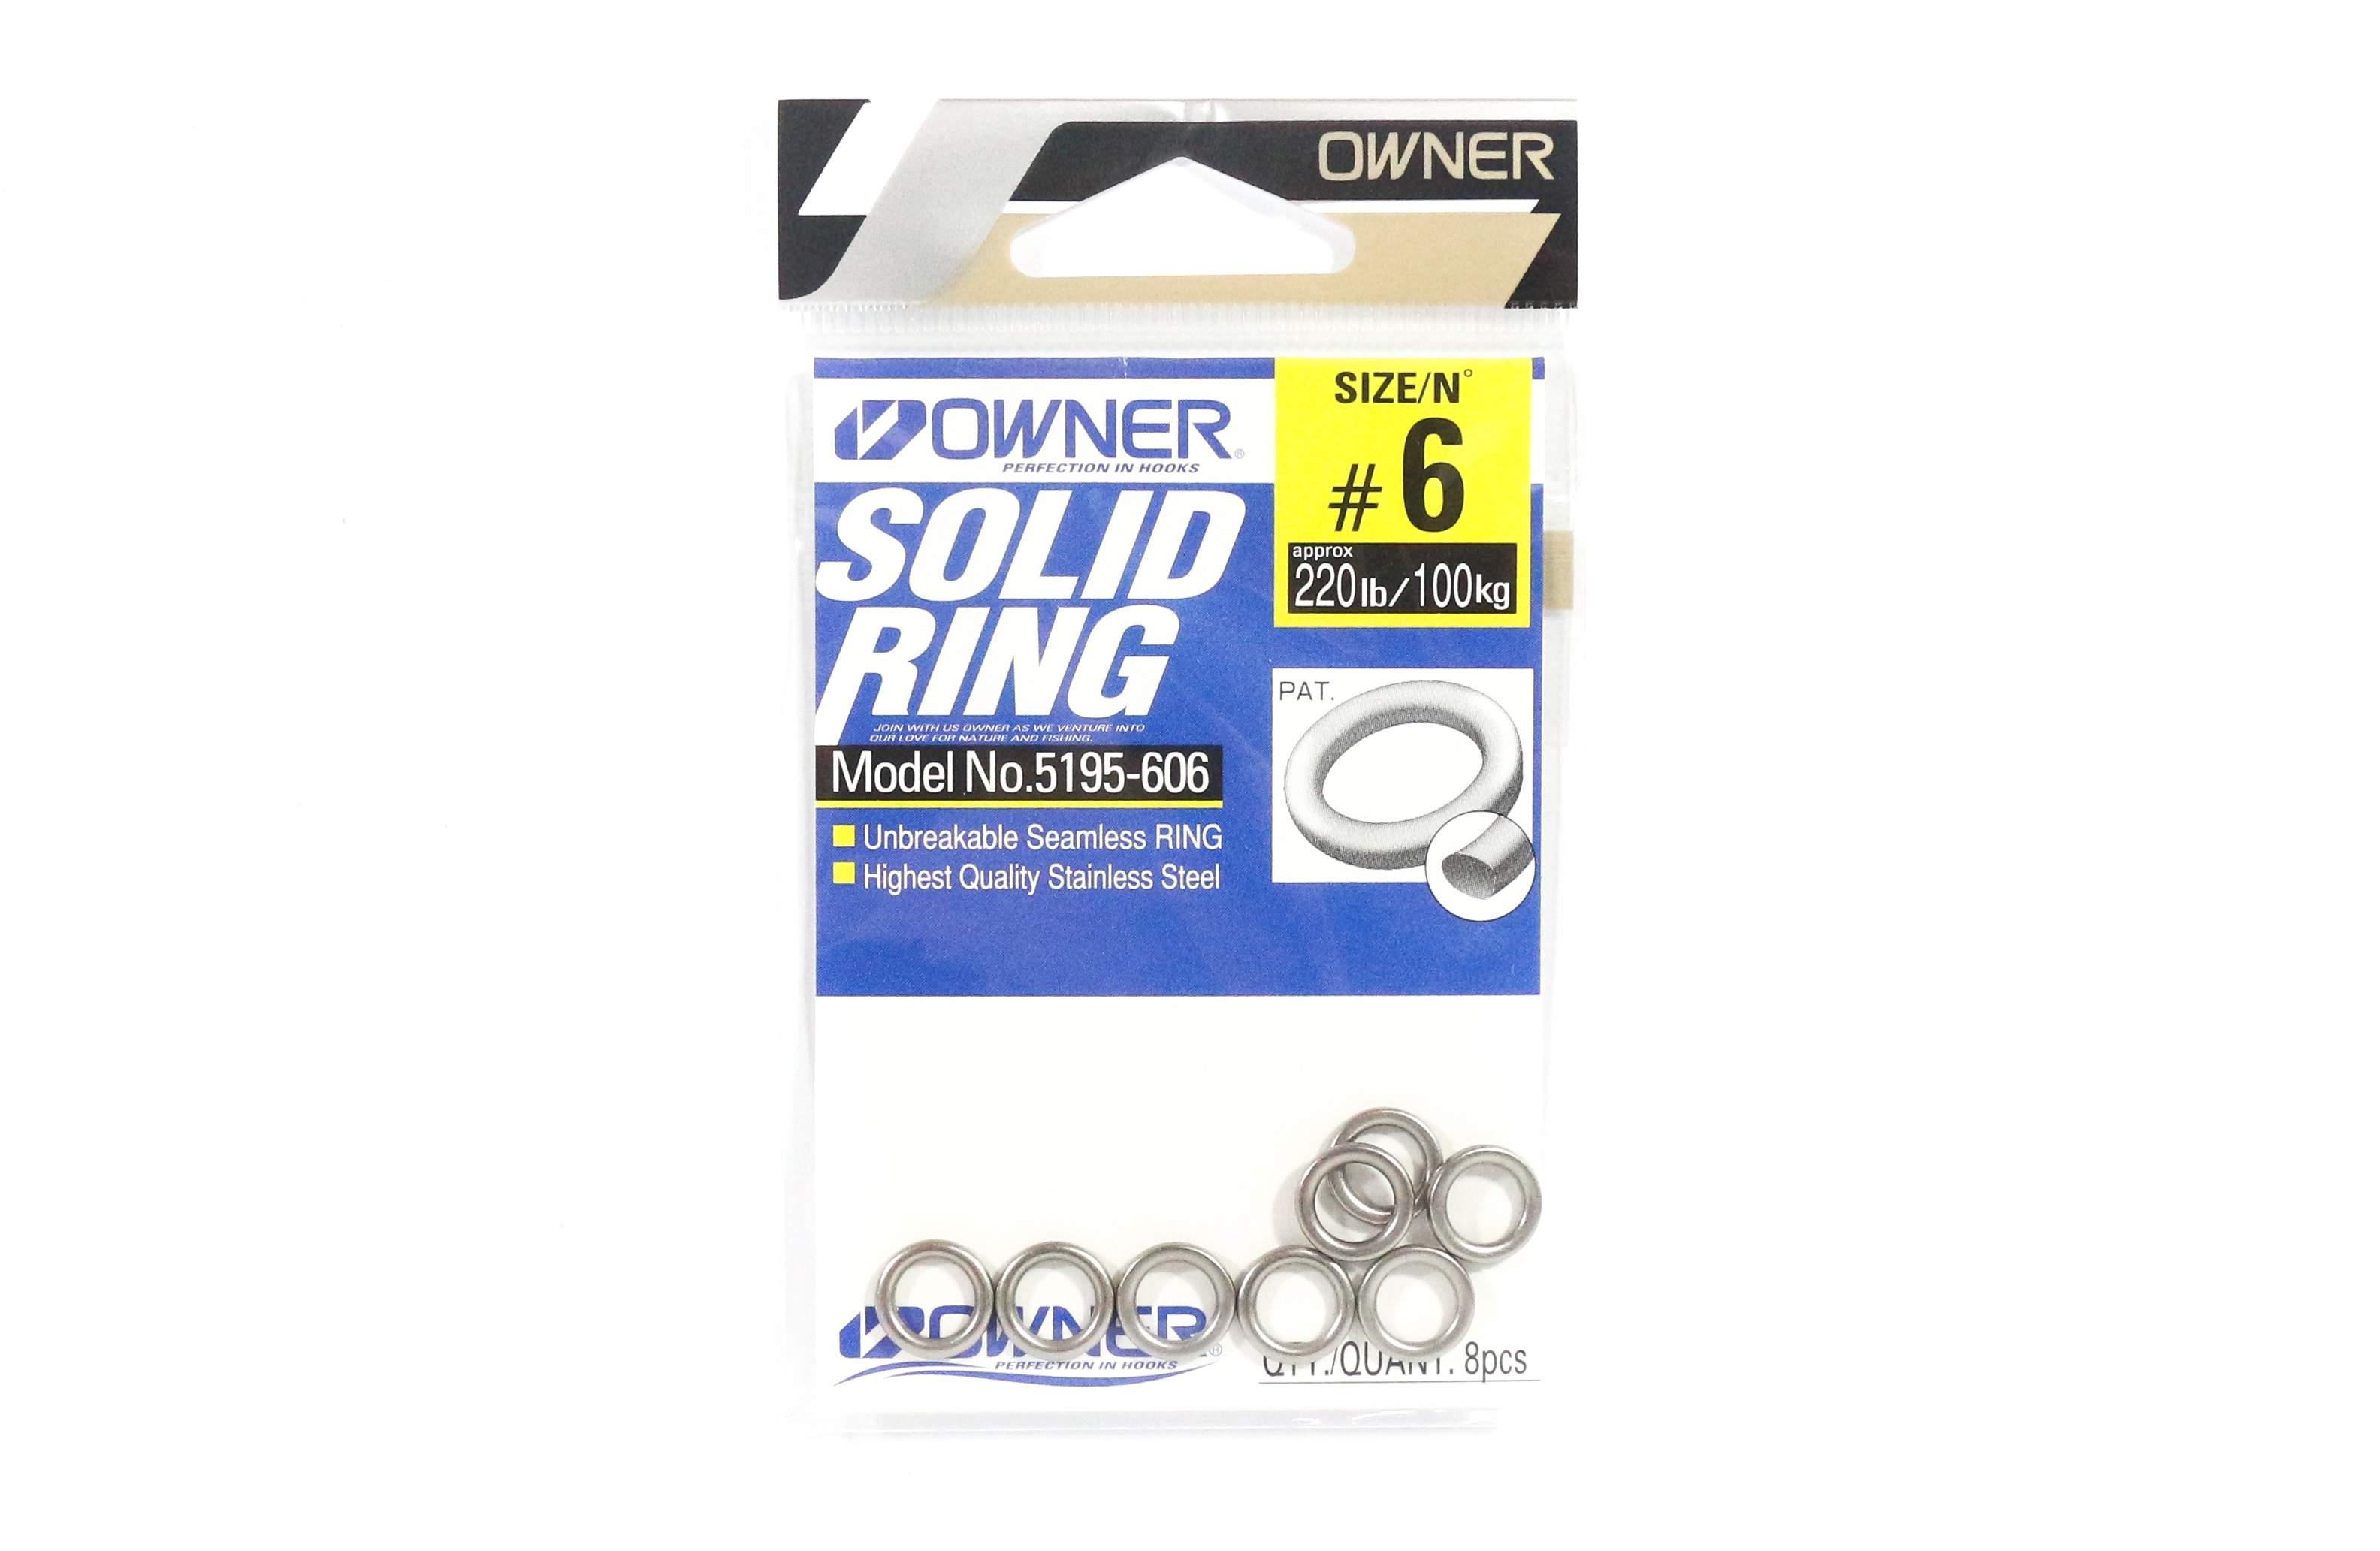 Owner 5195 Solid Ring Heavy Duty Size 6.0 , 220lb - 8 rings (0295)